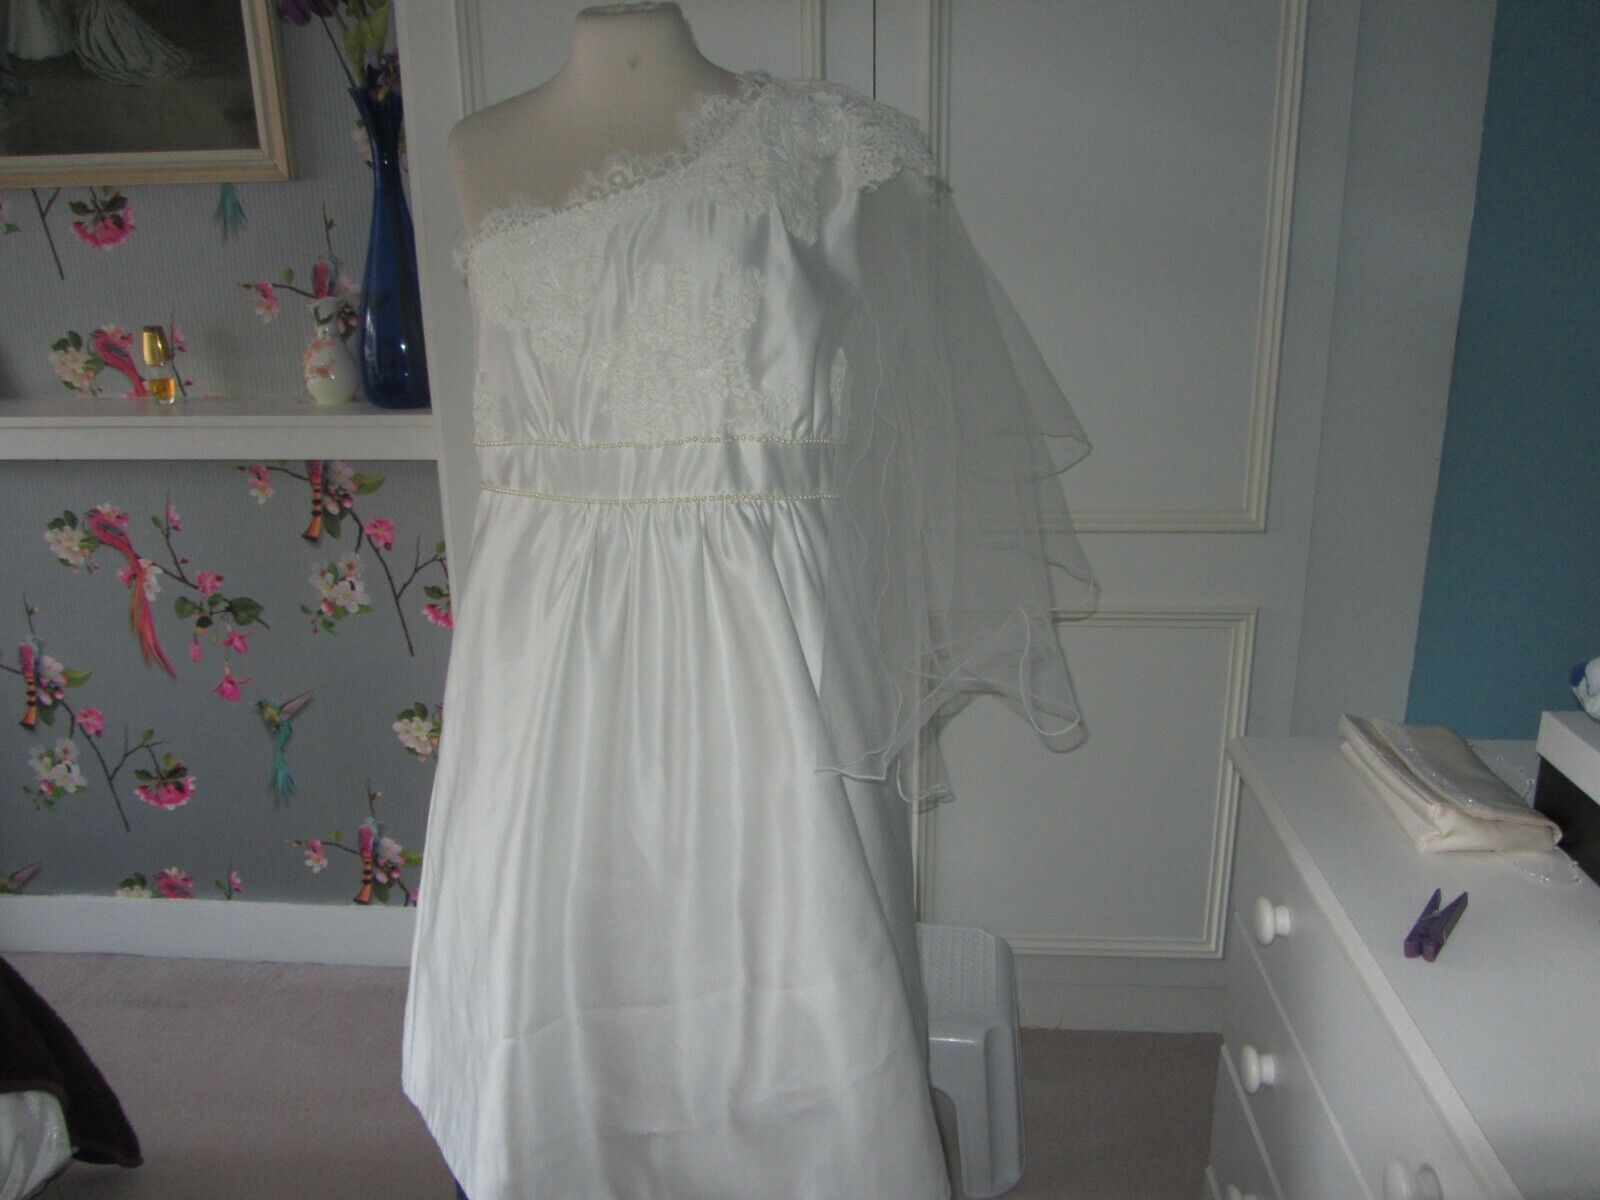 Ivory satin and corded lace short wedding dress 42in chest 40 waist